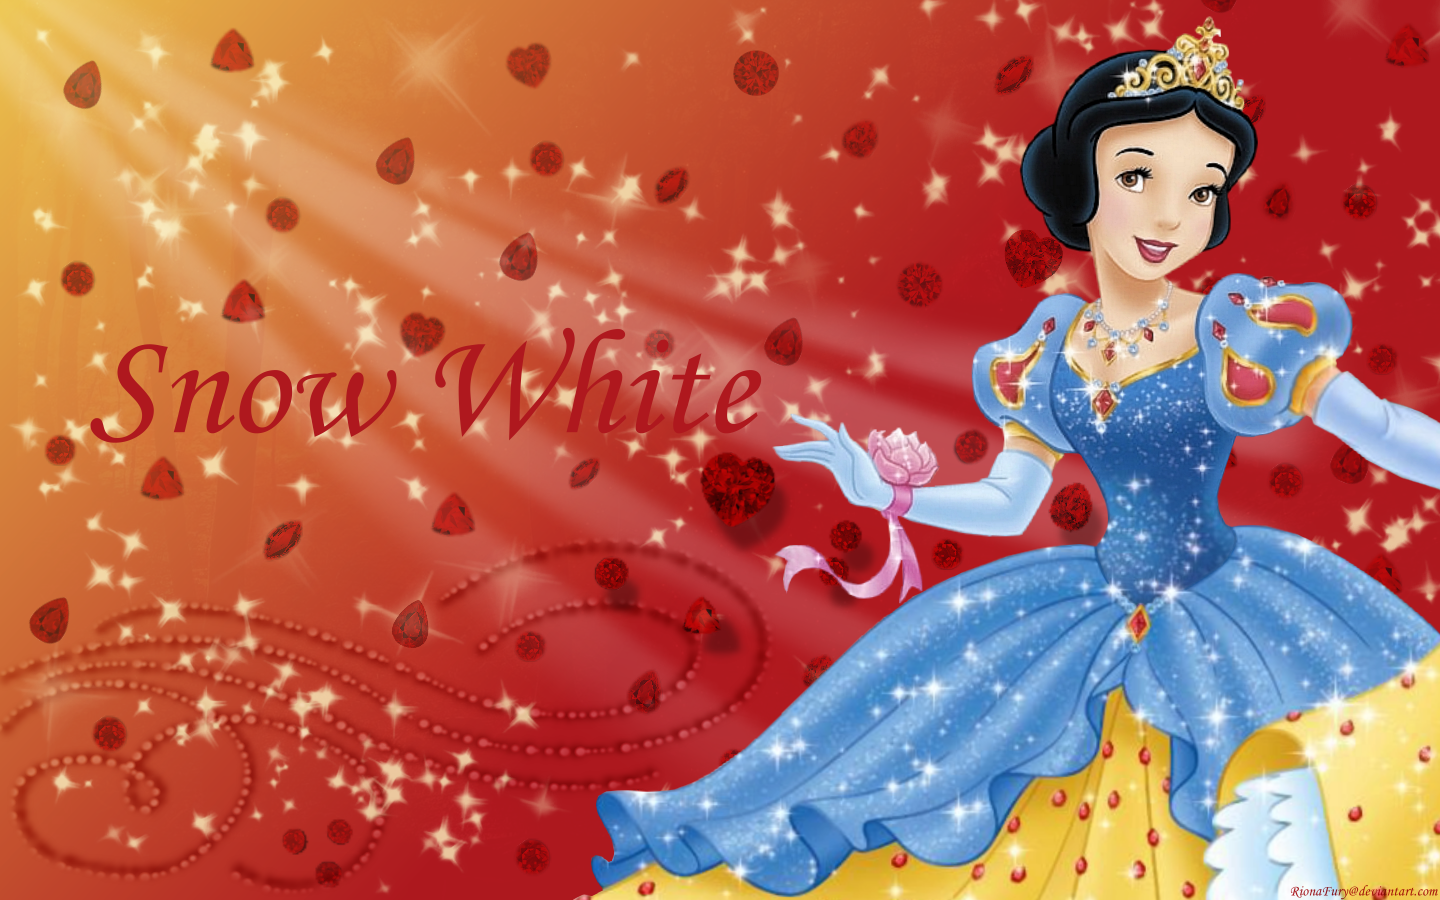 1000 Images About Princess Snow White On Pinterest Images Of Snow White Princess